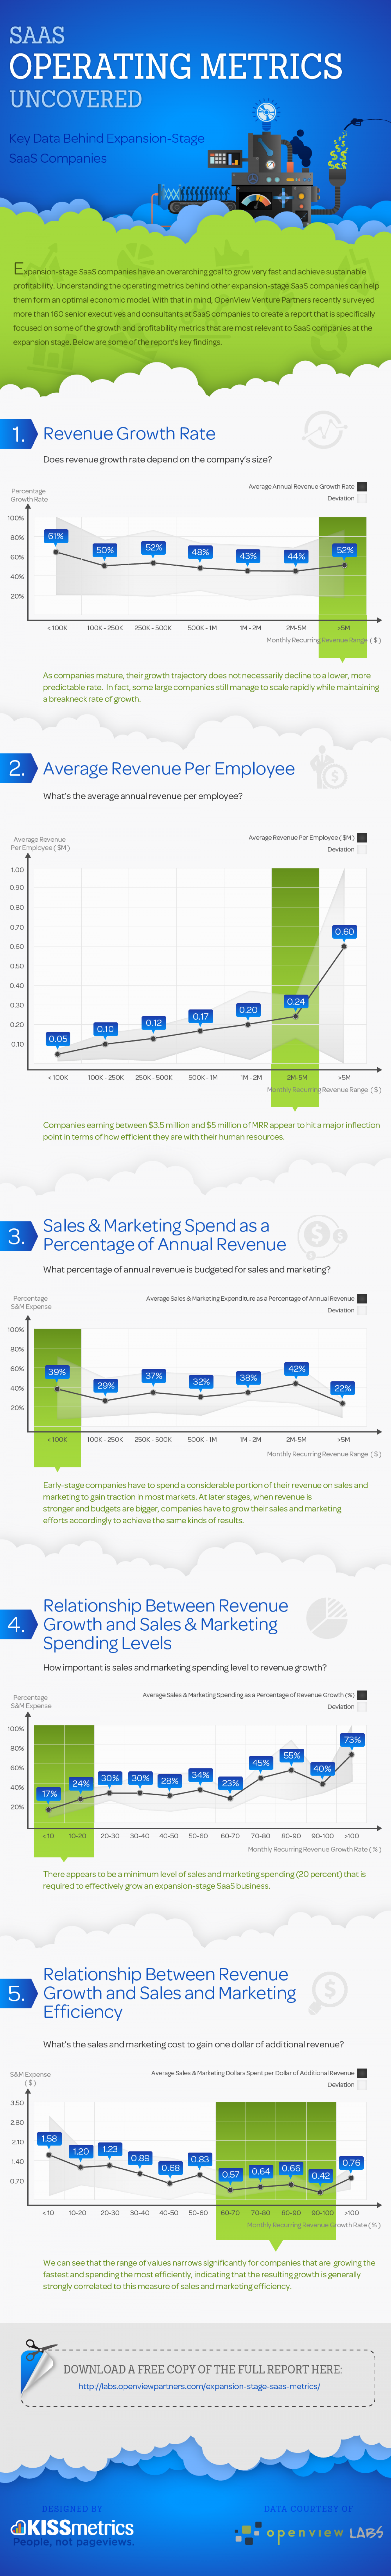 SaaS Operating Metrics Uncovered Infographic